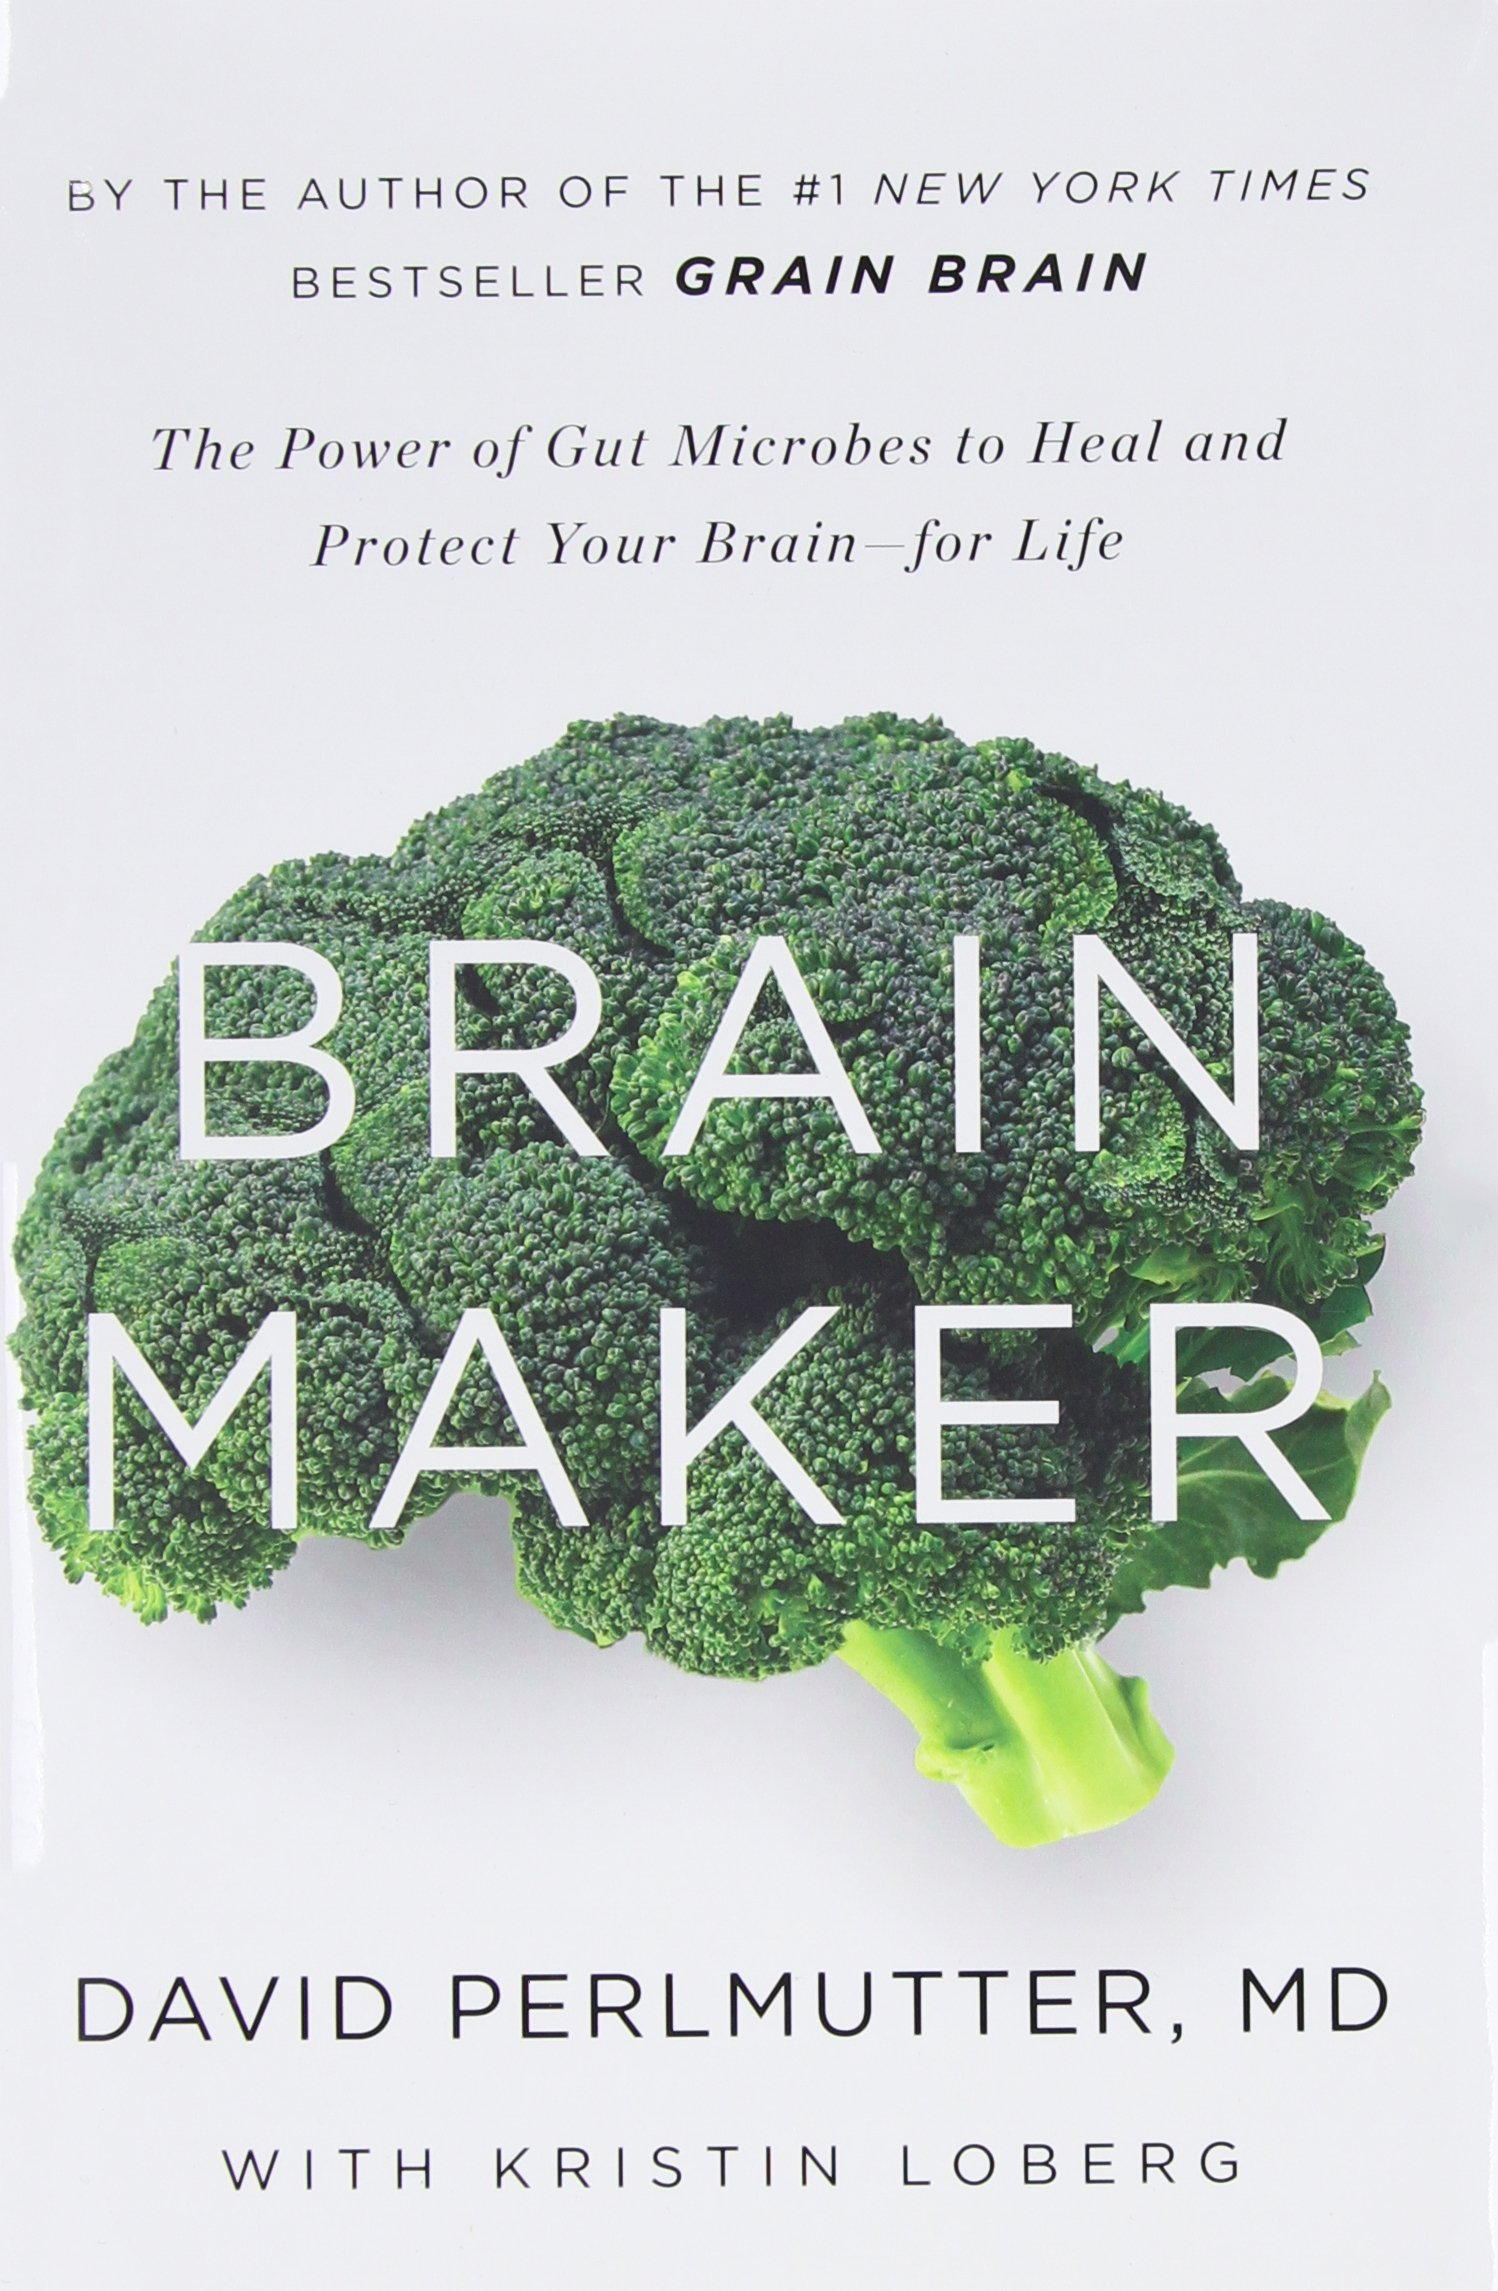 Brain Maker: The Power of Gut Microbes to Heal and Protect Your Brain-For Life: Amazon.es: David Perlmutter, Kristin Loberg: Libros en idiomas extranjeros